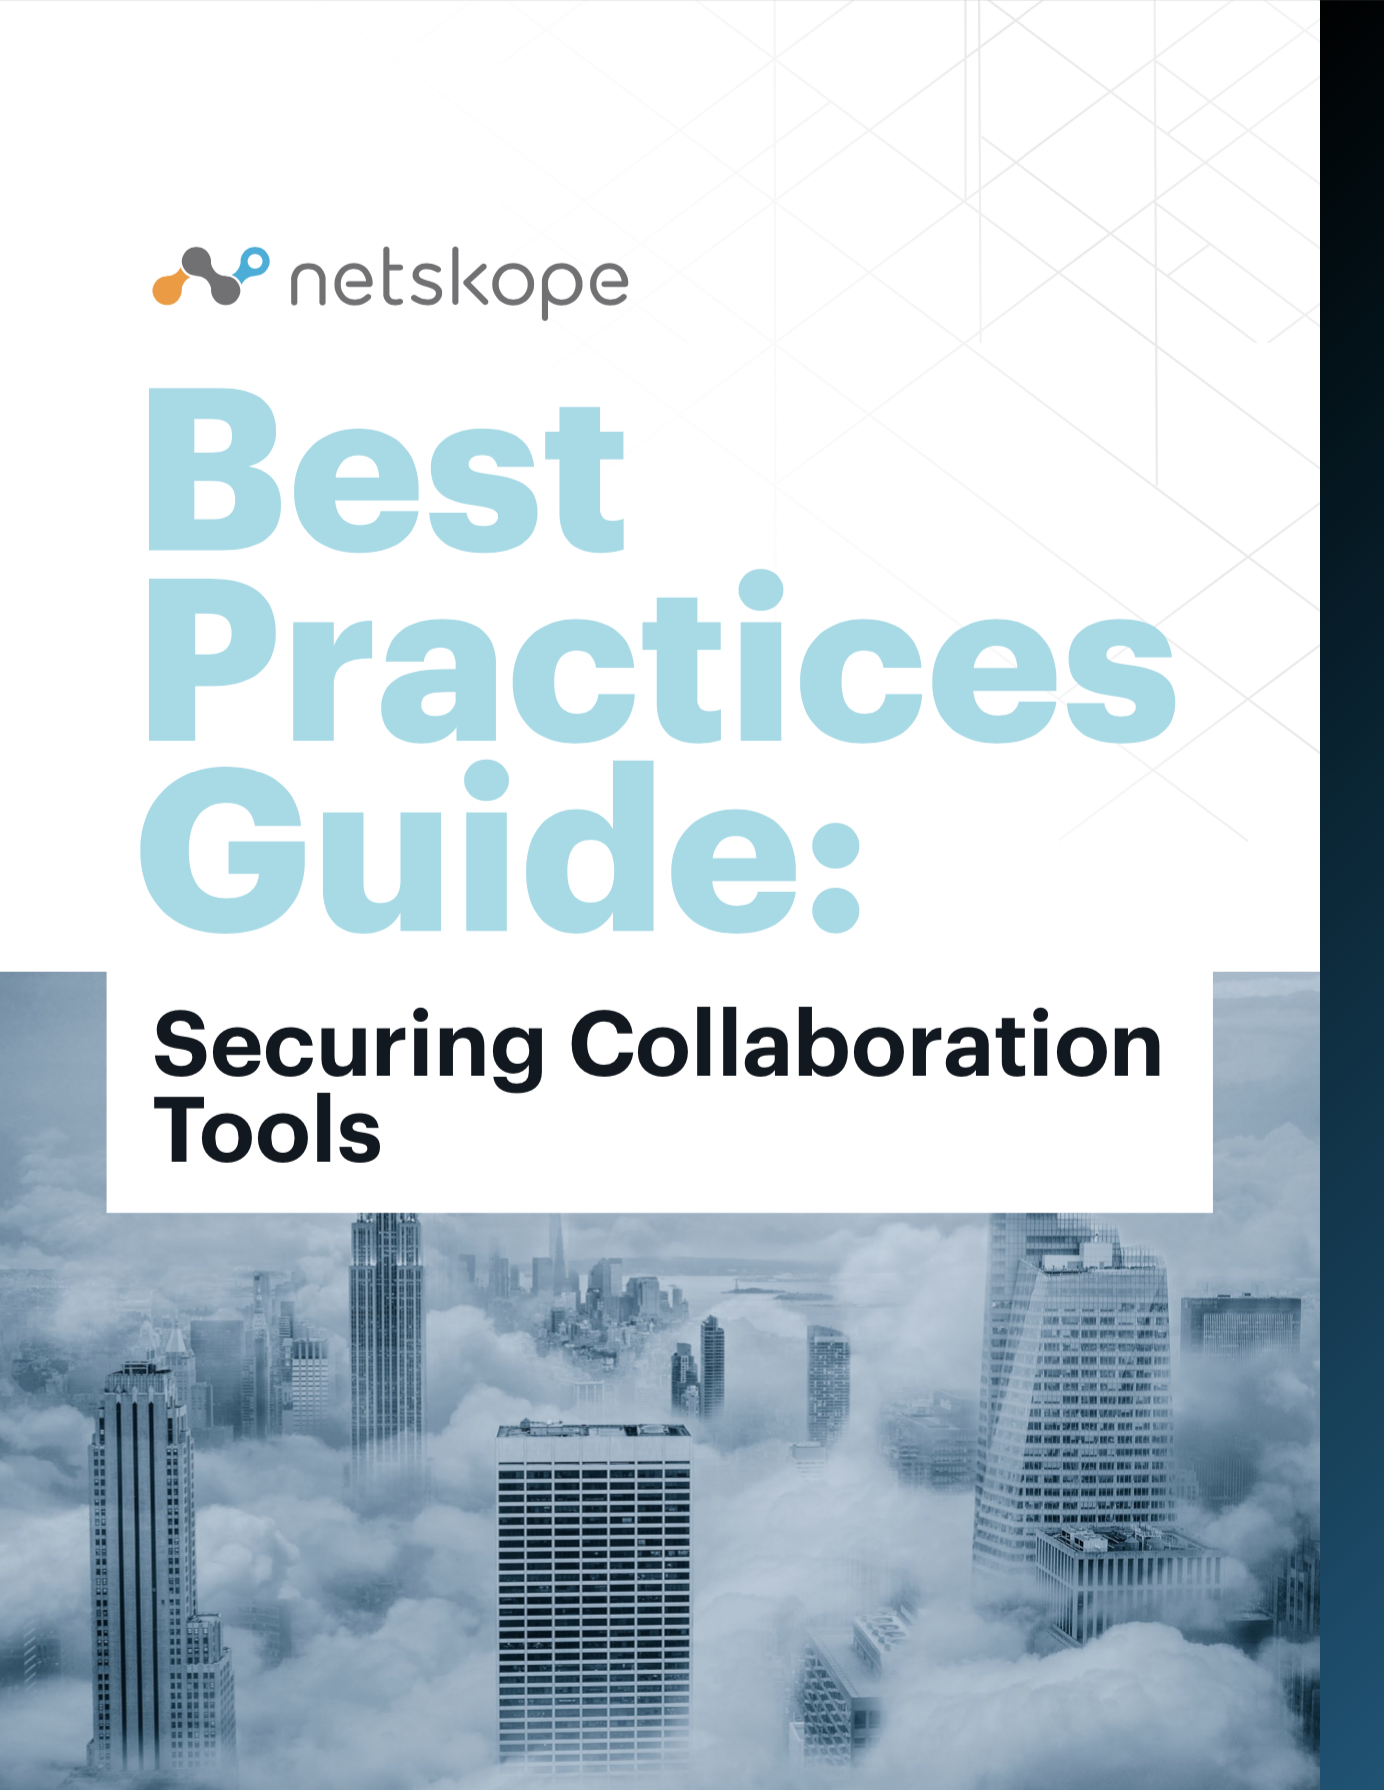 Netskope Securing Collaboration Tools